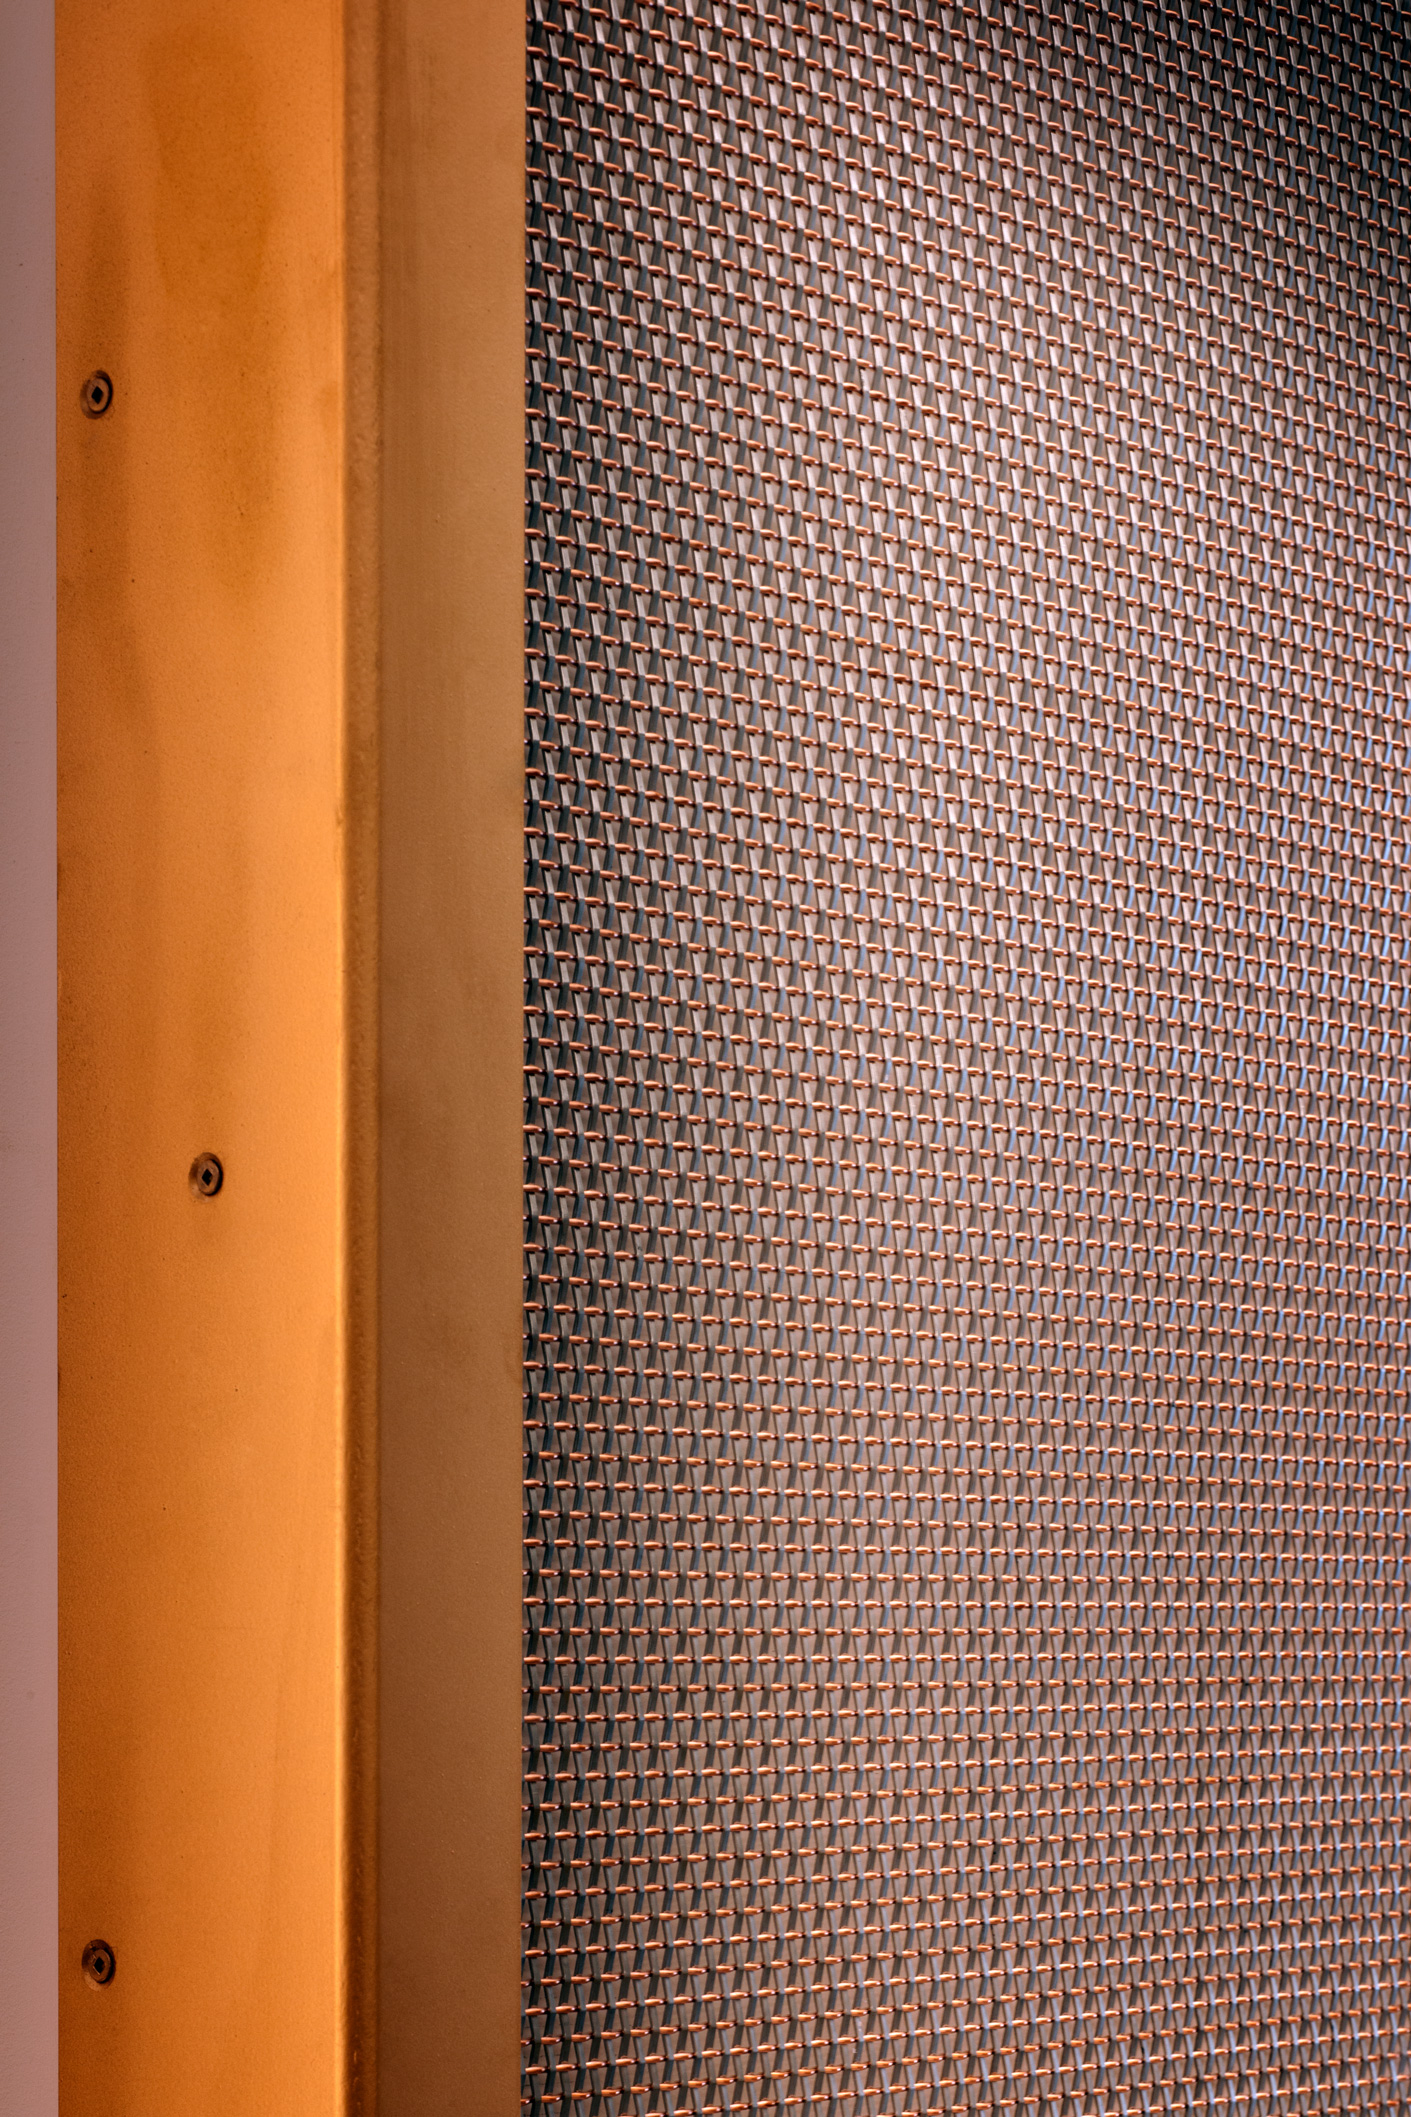 The copper and stainless steel SZ-4 was mounted to the wall by trapping it behind a sheet of glass and a custom manufactured frame.